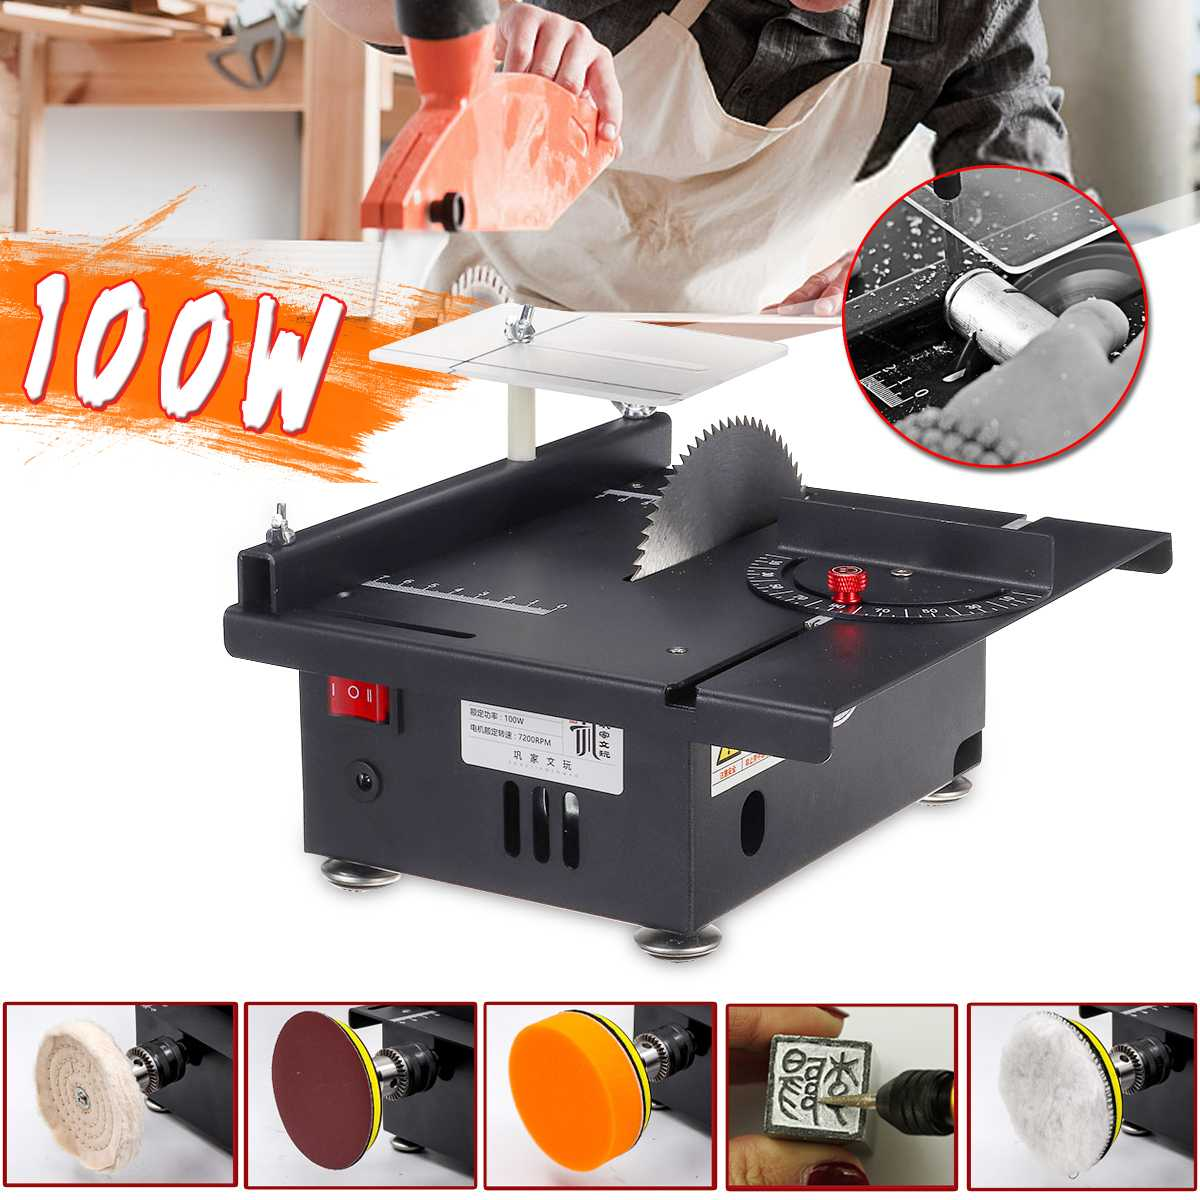 Mini Electric Table Saw Woodworking Bench Saw Grinder Handmade Hobby Model Crafts Cutting Tool With Power Circular Saw Blade Electric Saws Aliexpress